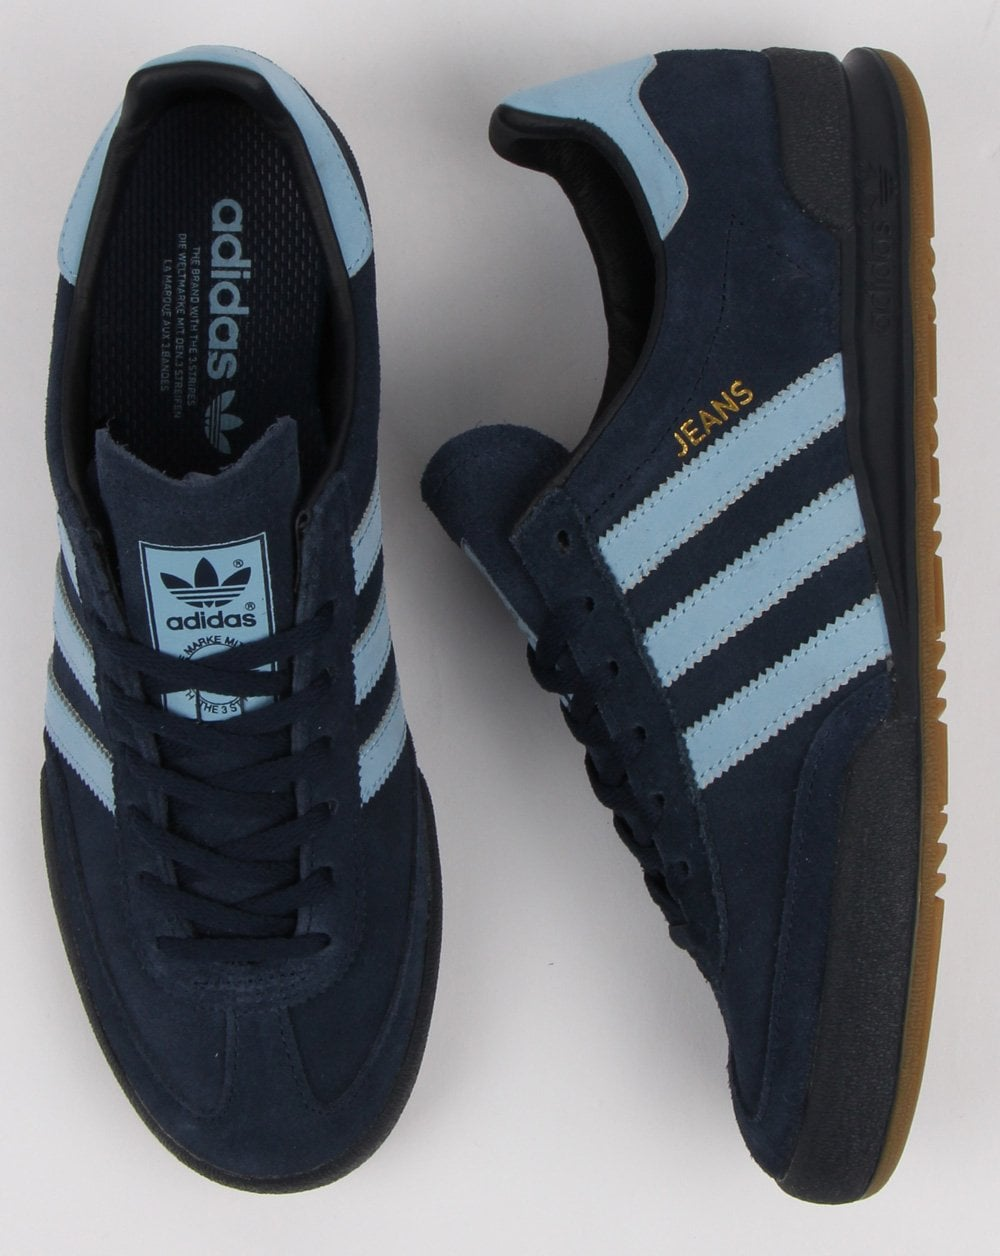 Adidas Jeans Trainers Navy/Sky